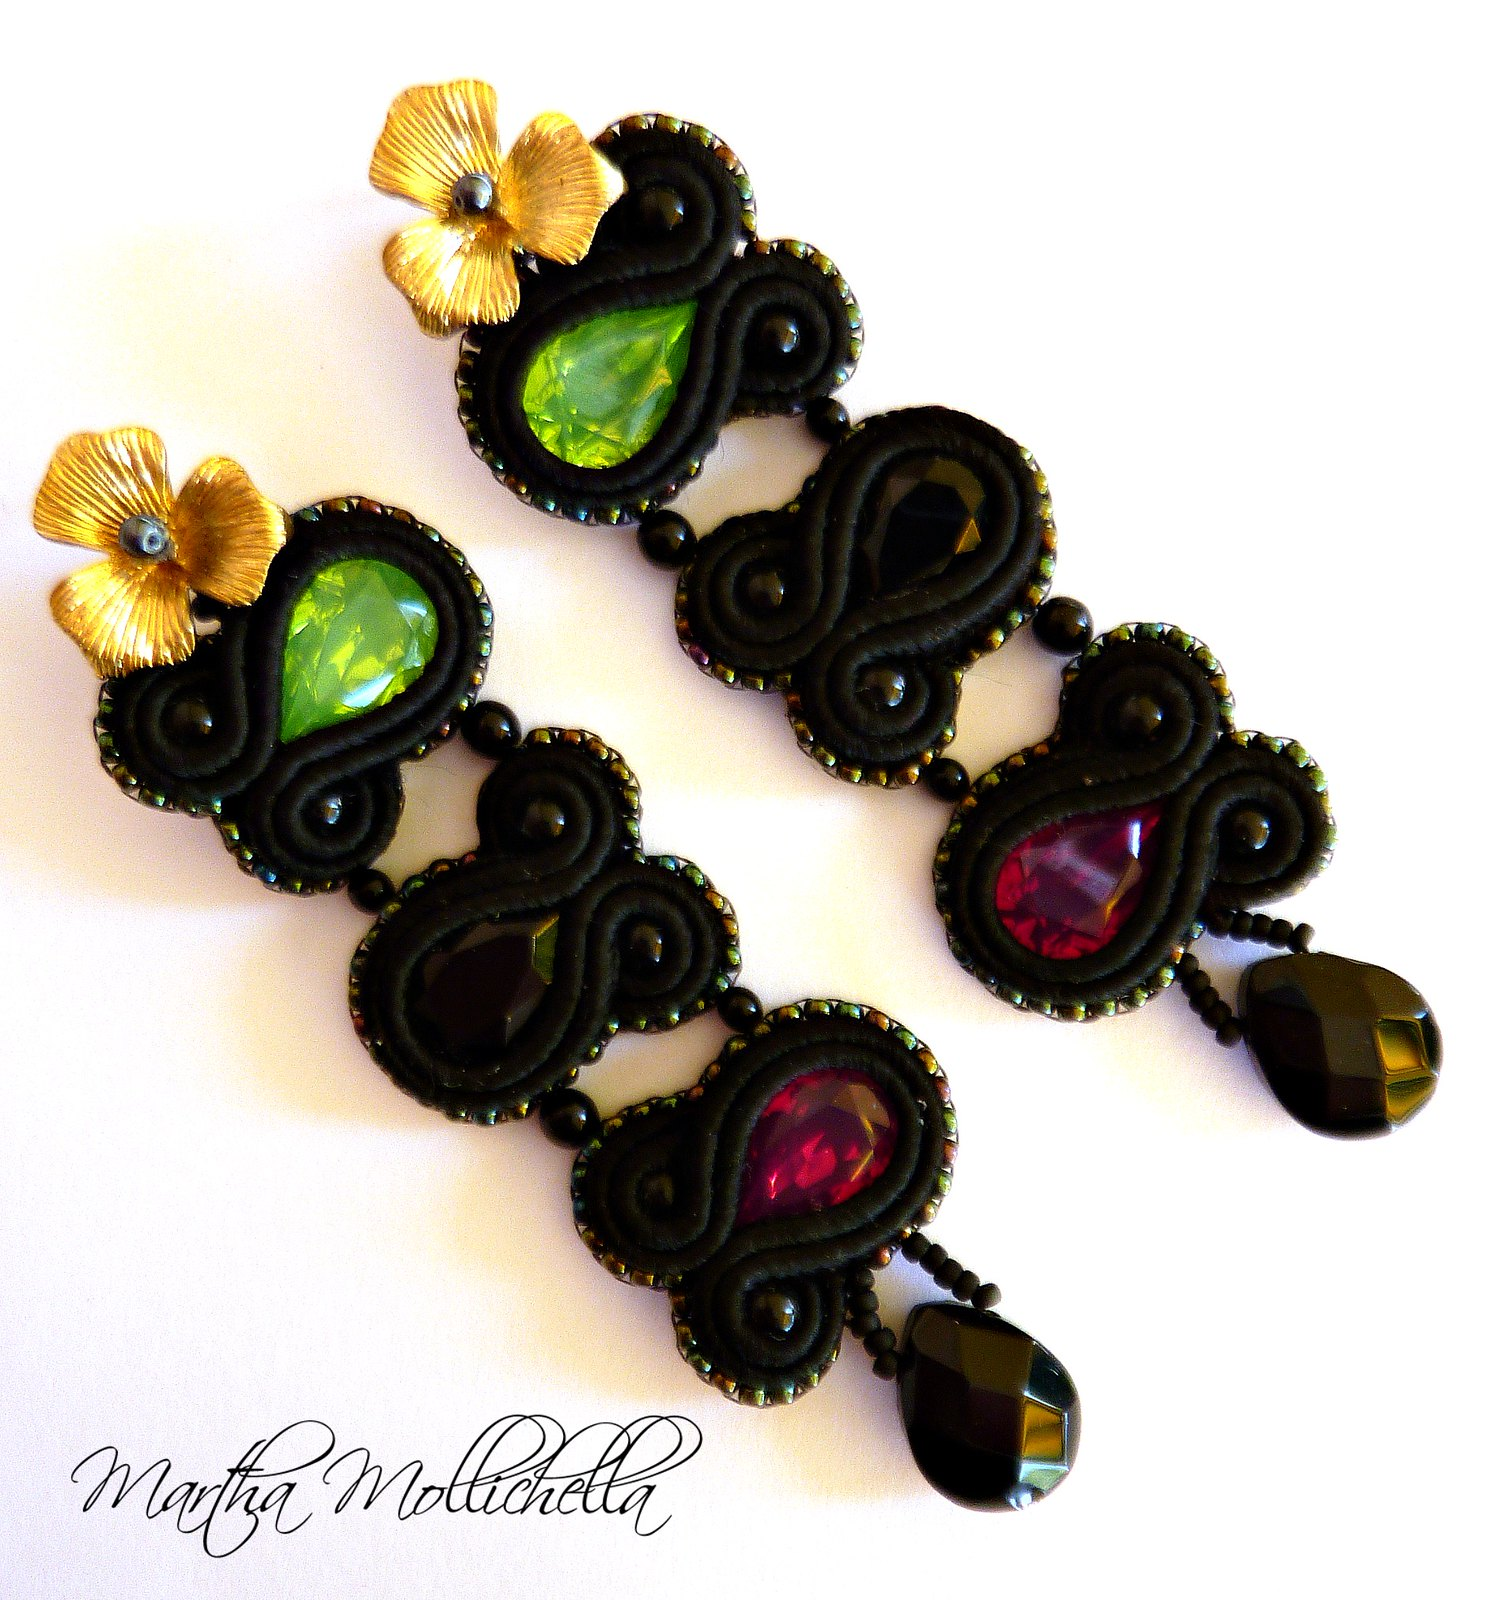 Soutache earrings handmade in Italy by Martha Mollichella